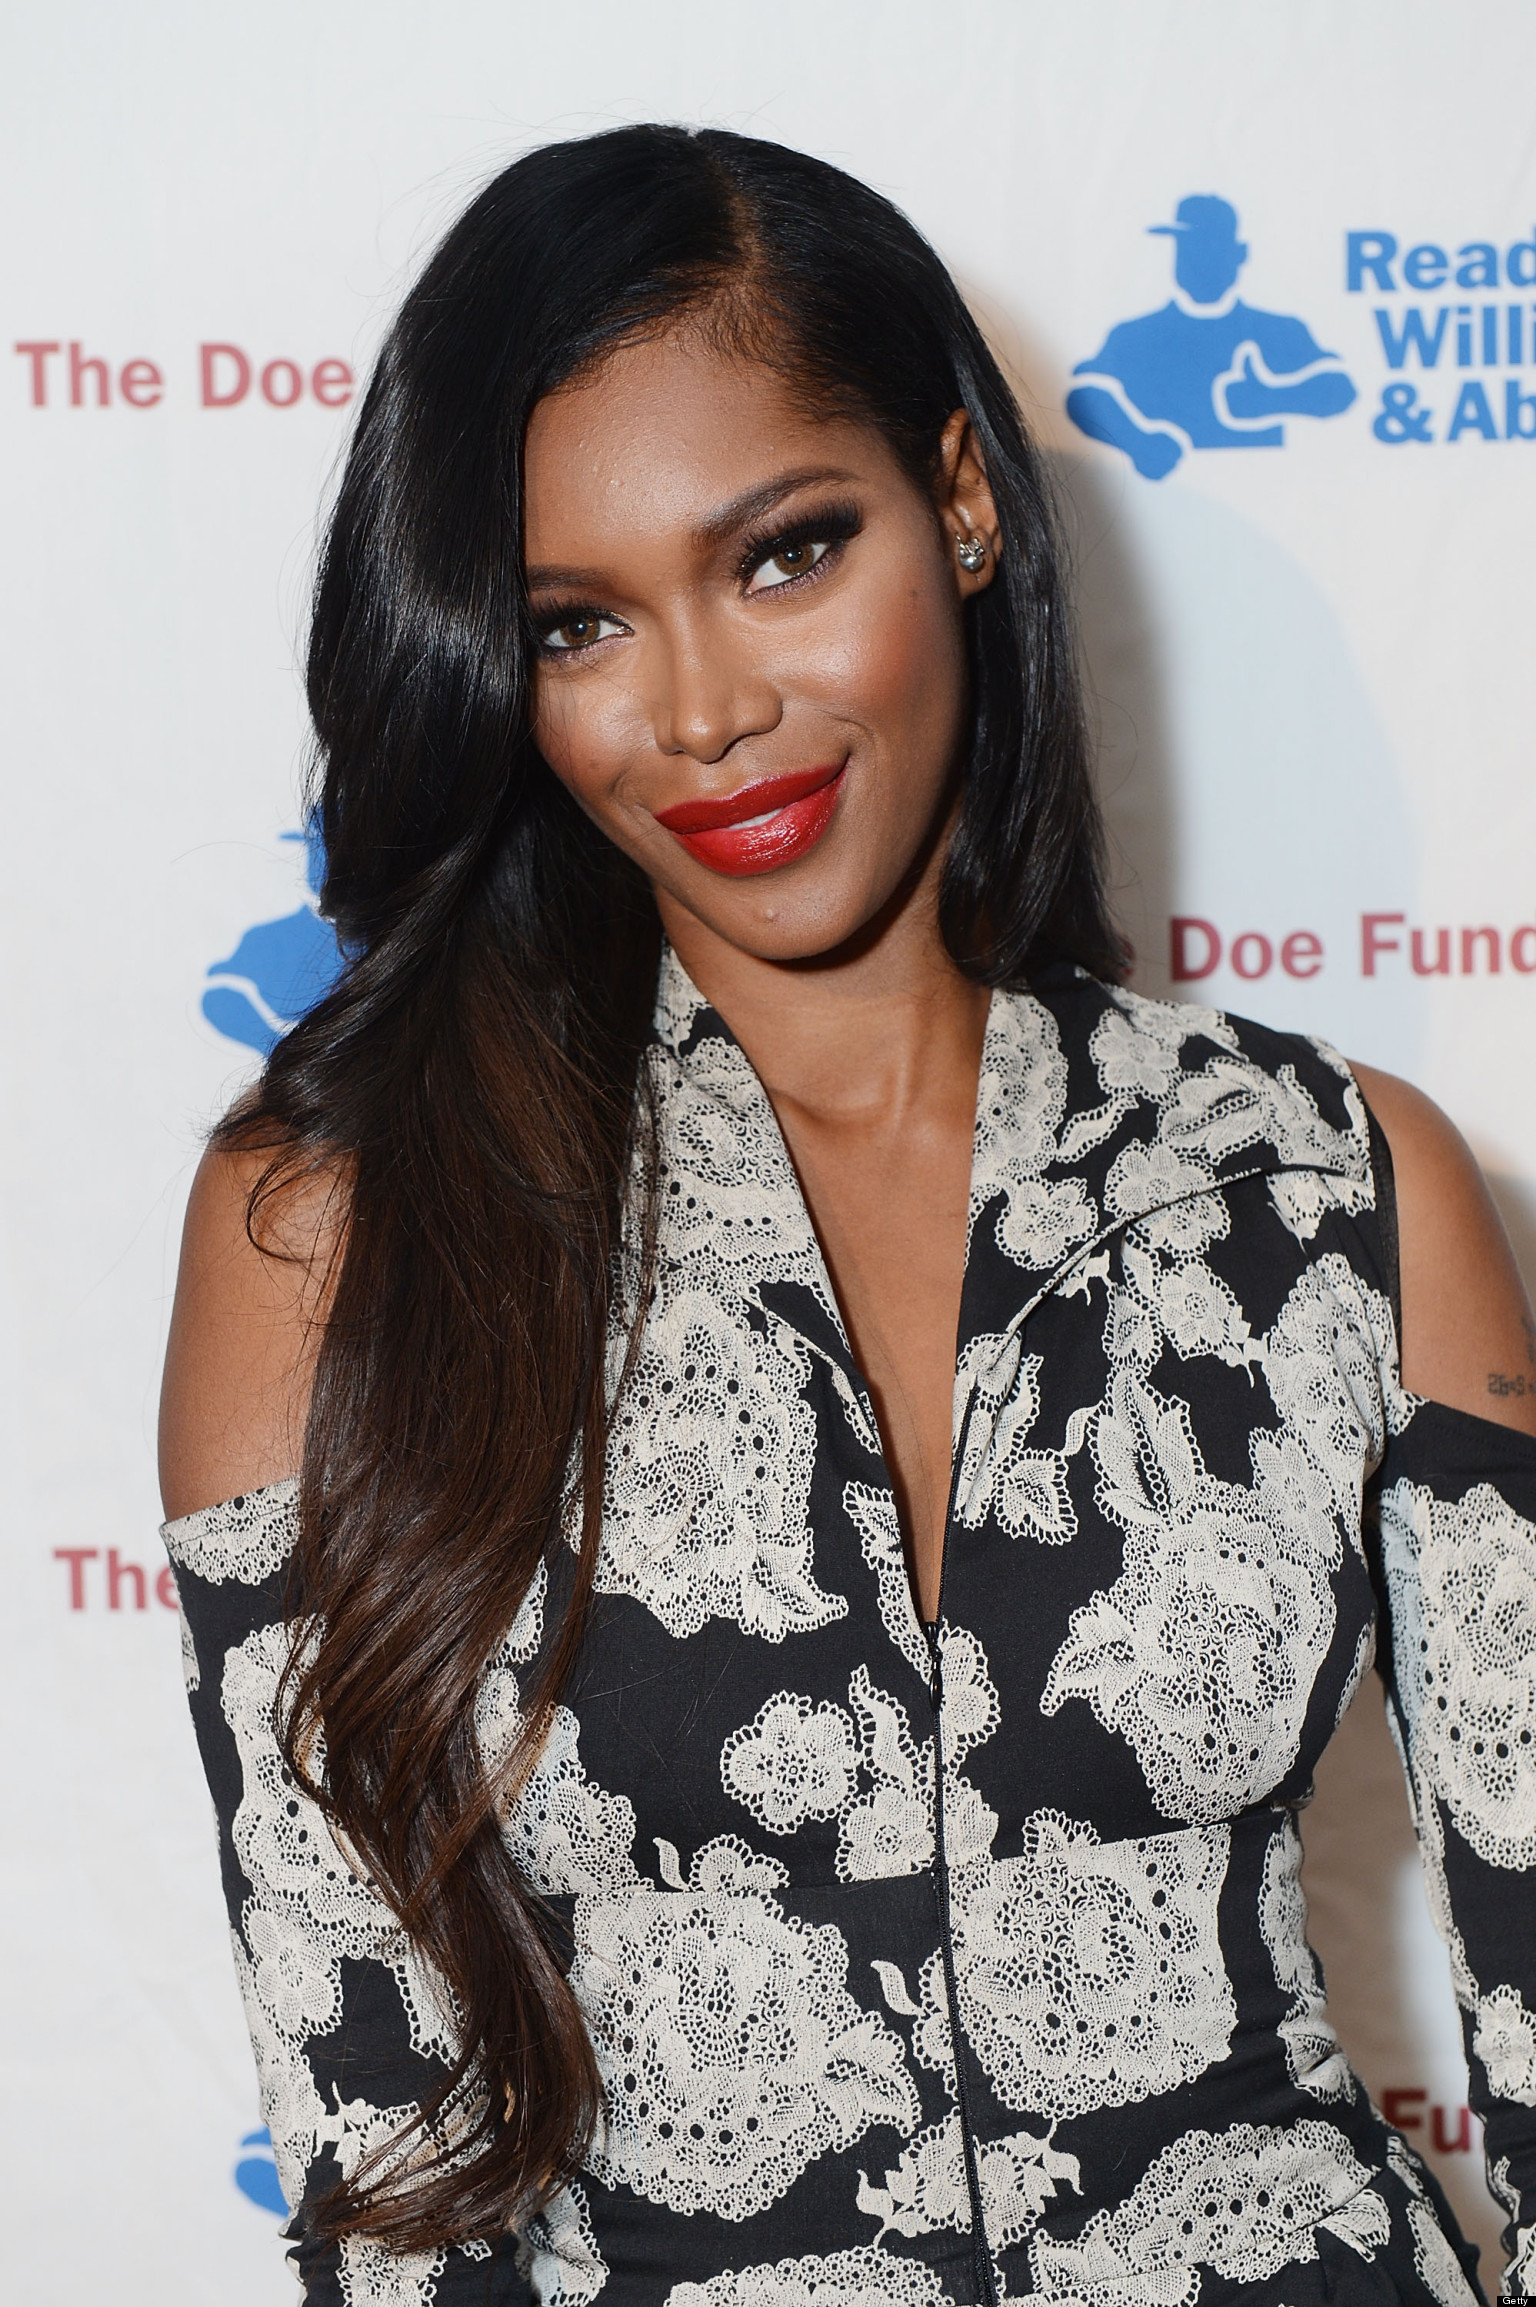 Jessica White, Model, Lands Reality Show On The Style ...